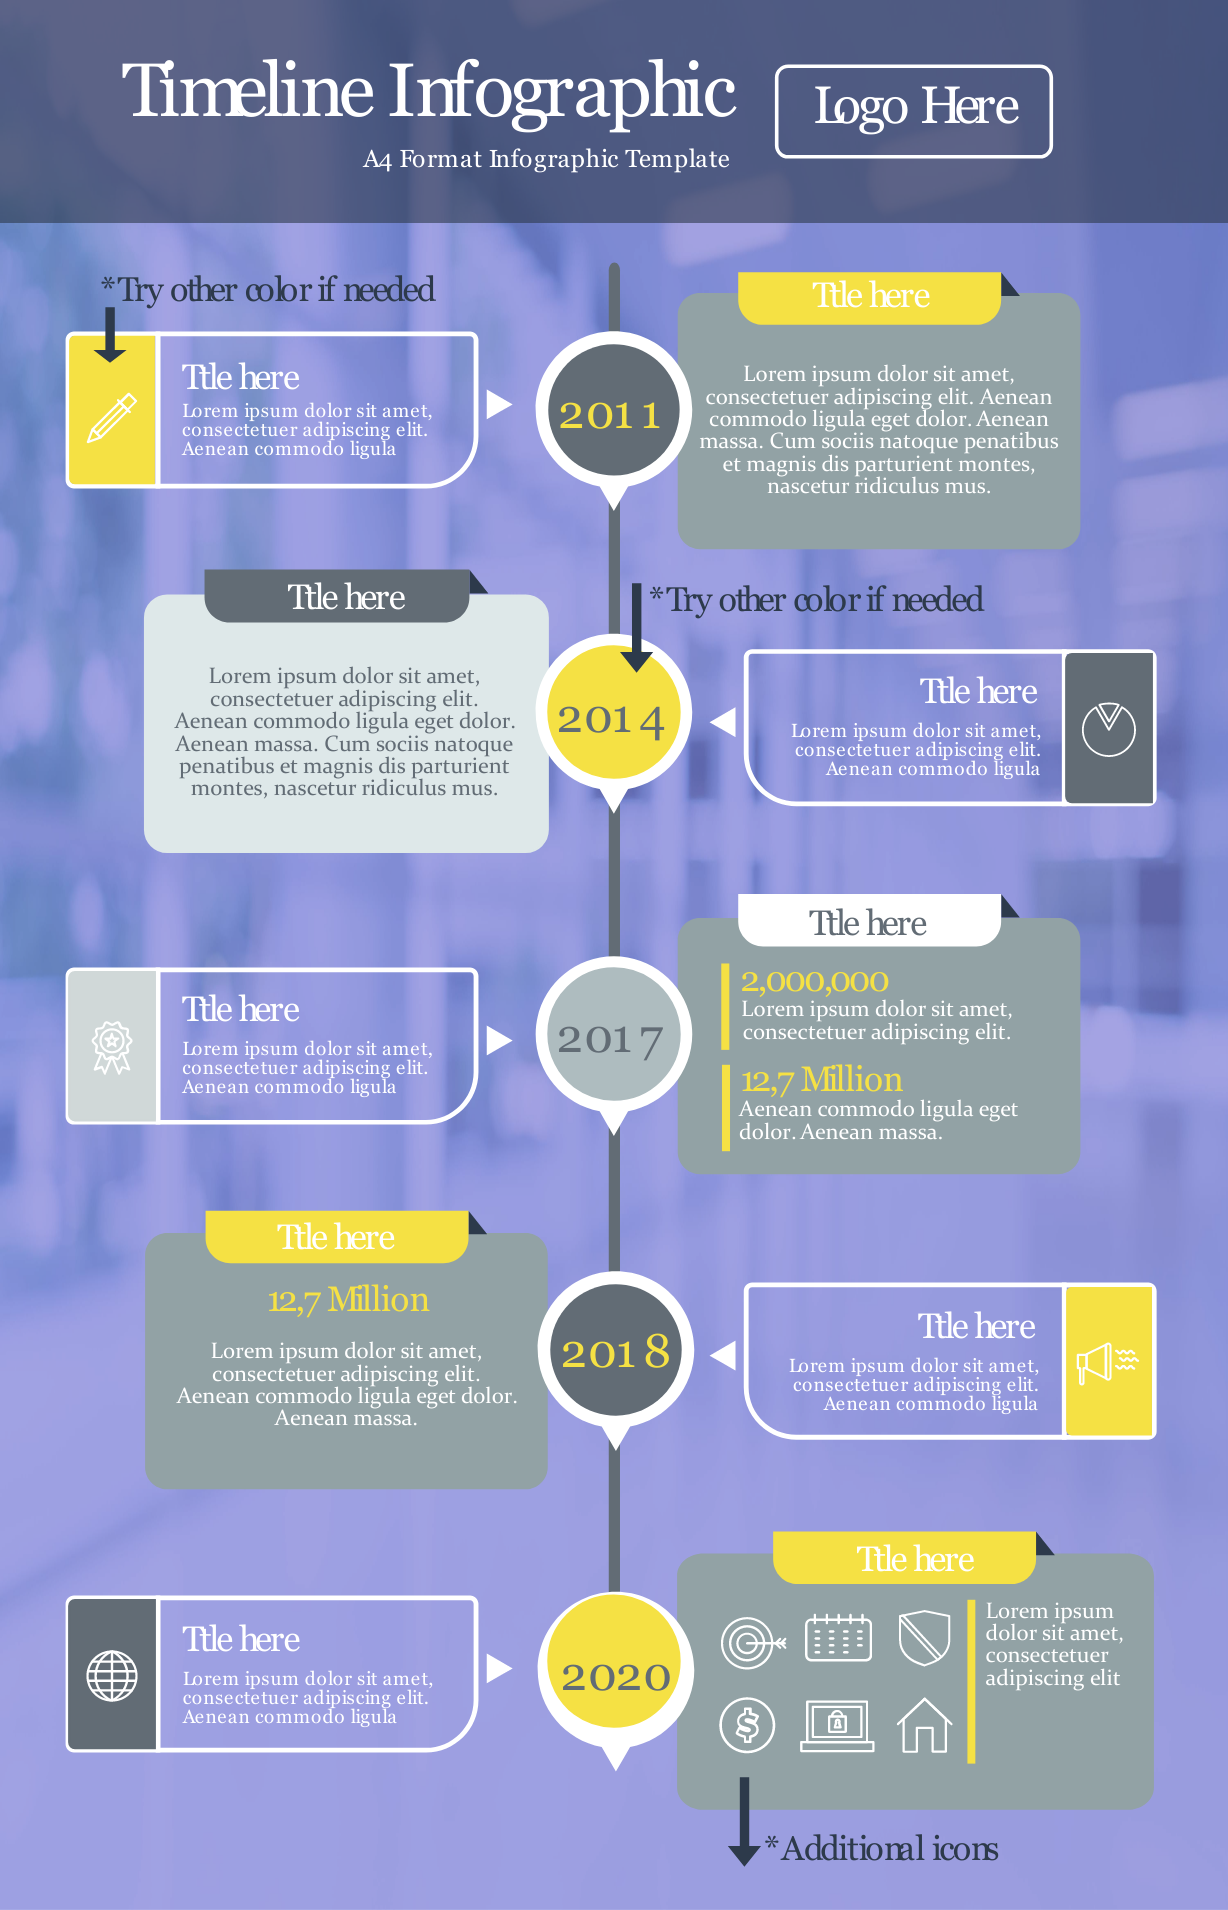 timeline infographic example